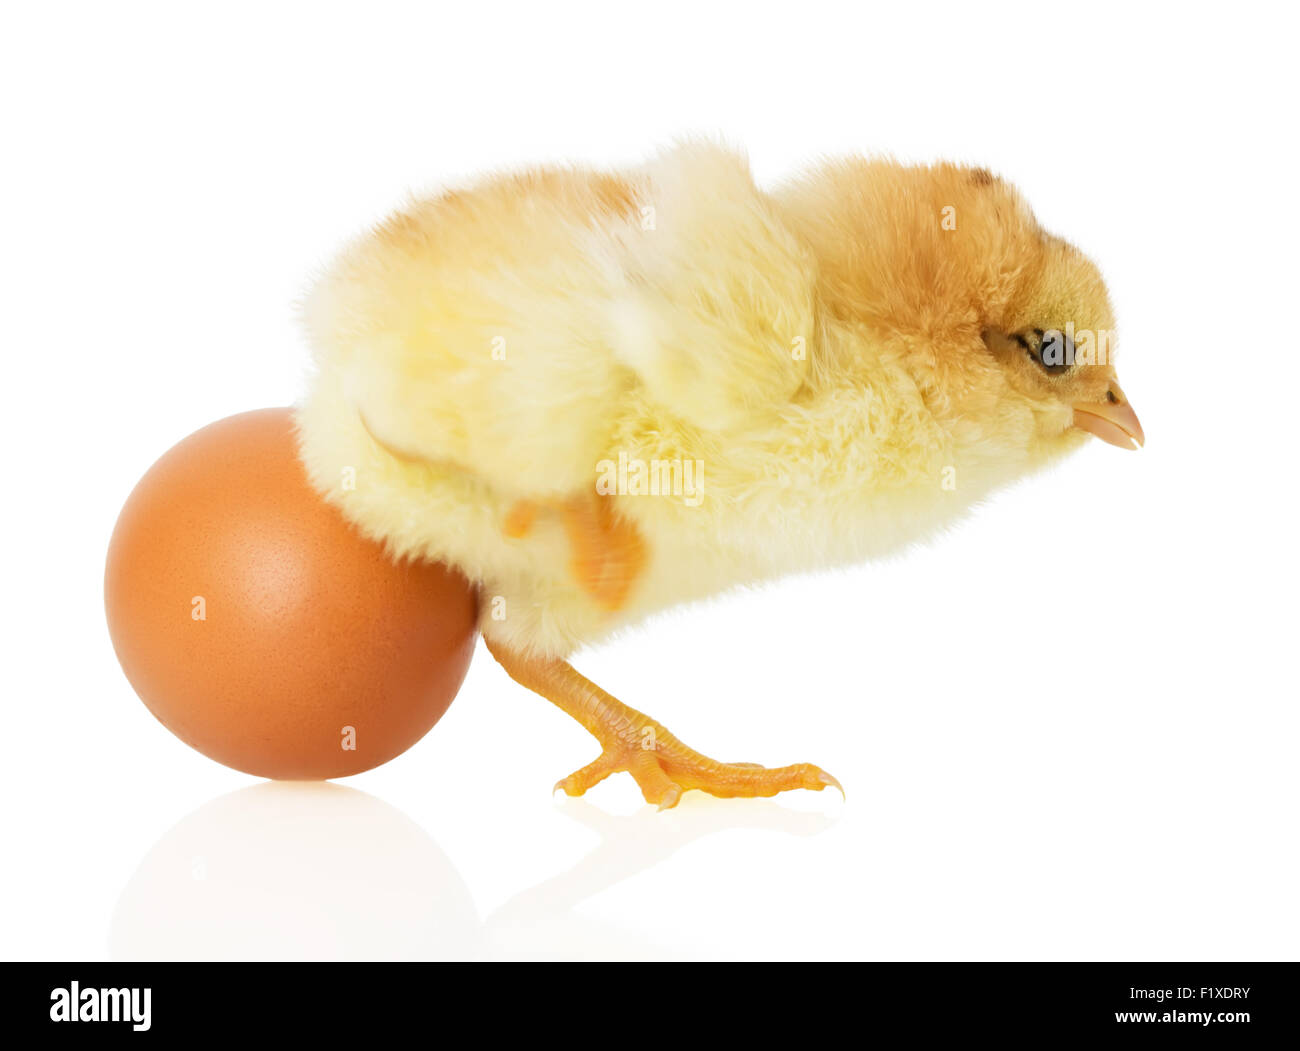 Chick and egg on white background. - Stock Image